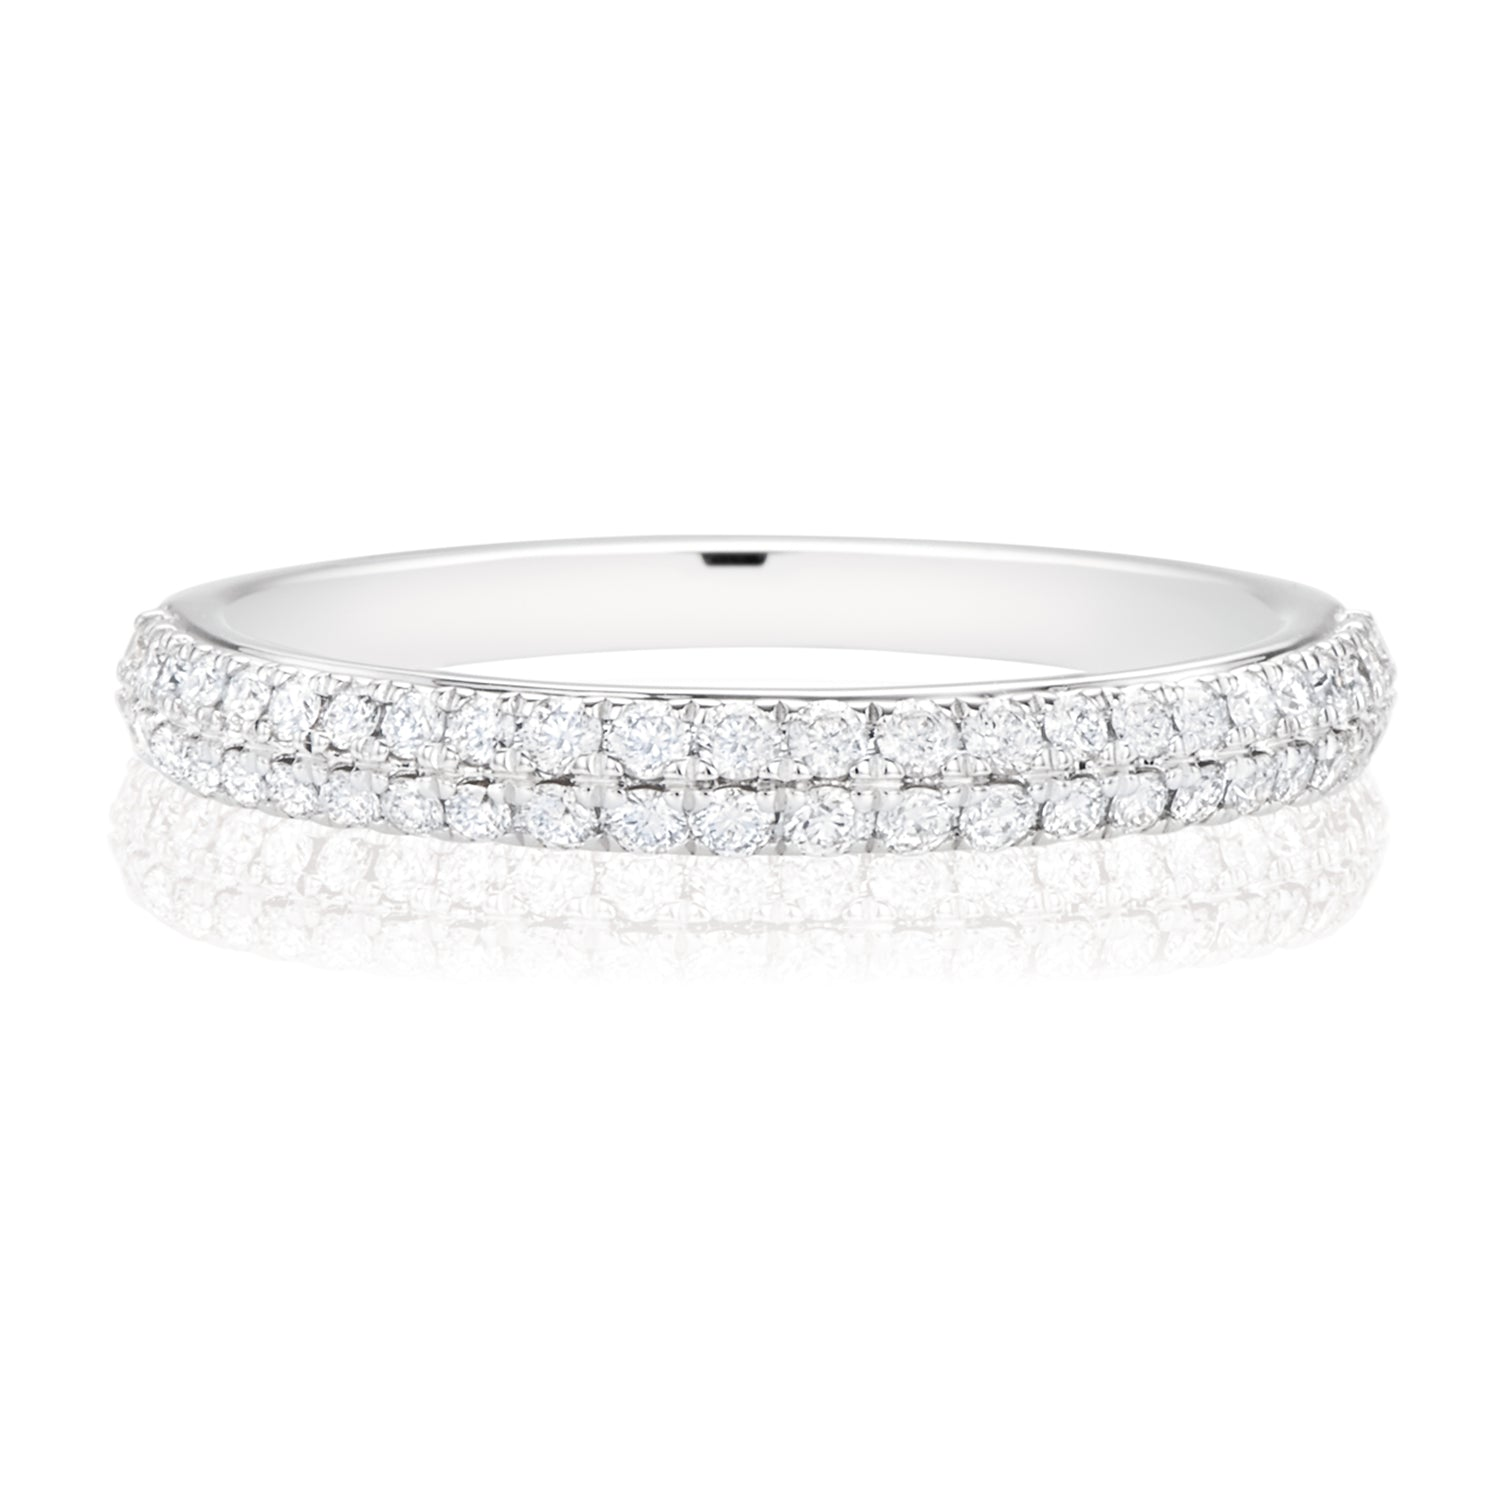 Vera Wang Love 18ct White Gold Round Brilliant Cut with 0.38 CARAT tw of Diamonds